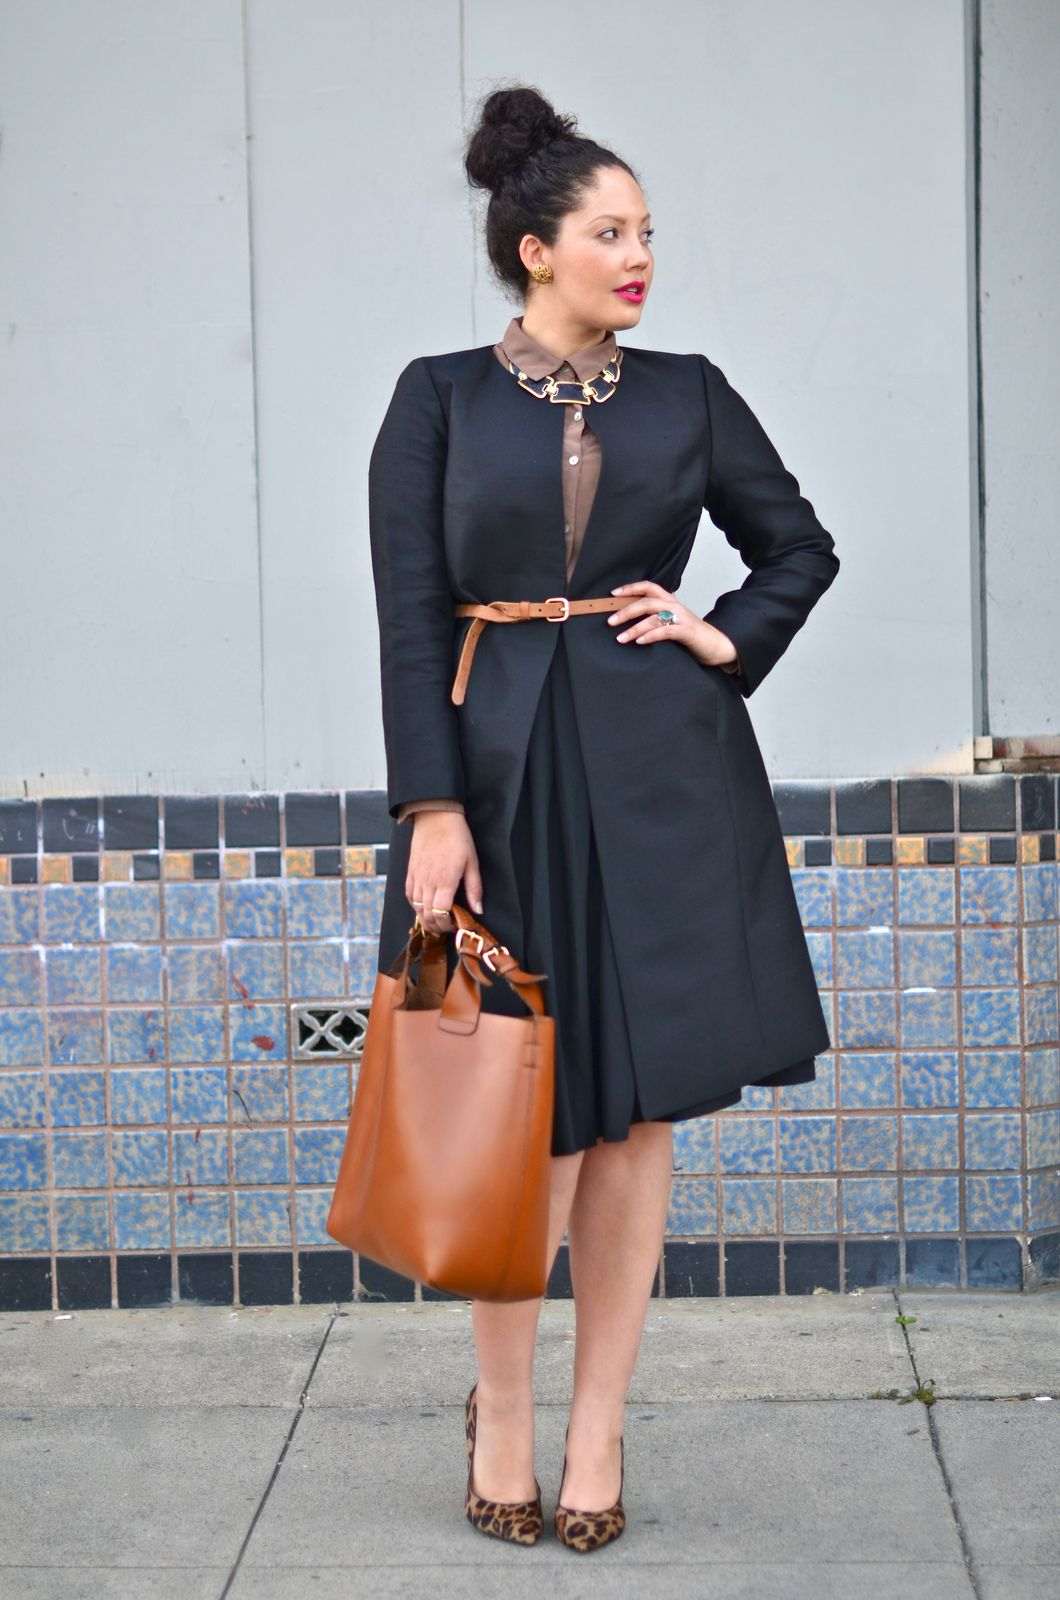 Fashion Moda Curvy Curves Style Plussize Blogger Cute Sexy Outfit Look Woman Girl Ootd